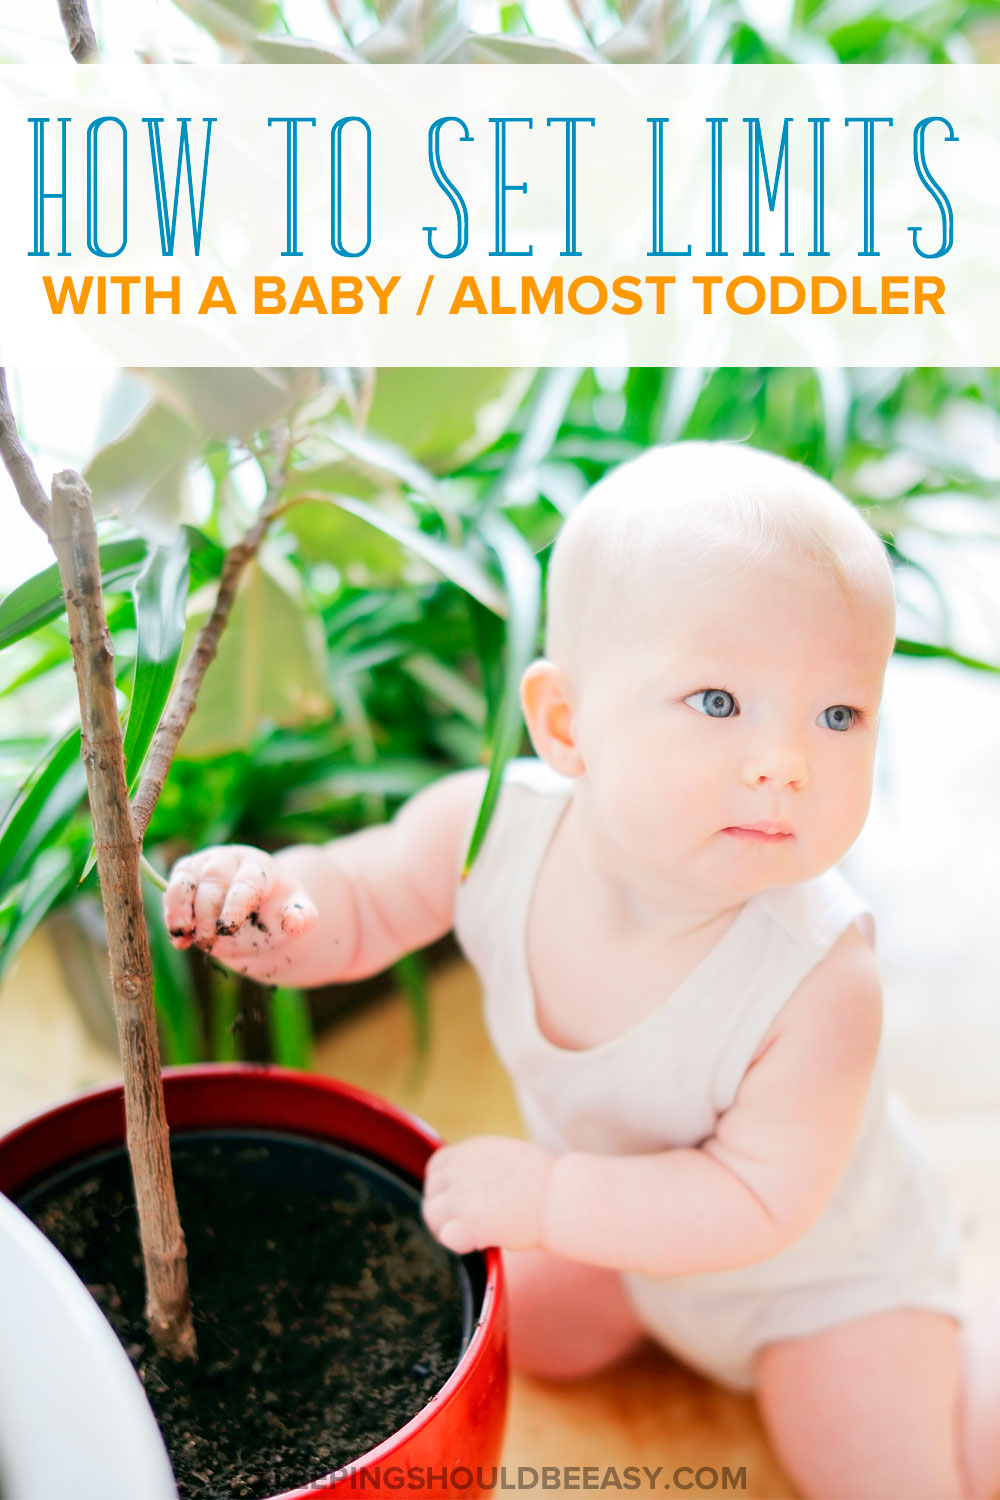 Baby and toddler-aged child reaching her hand into a plant